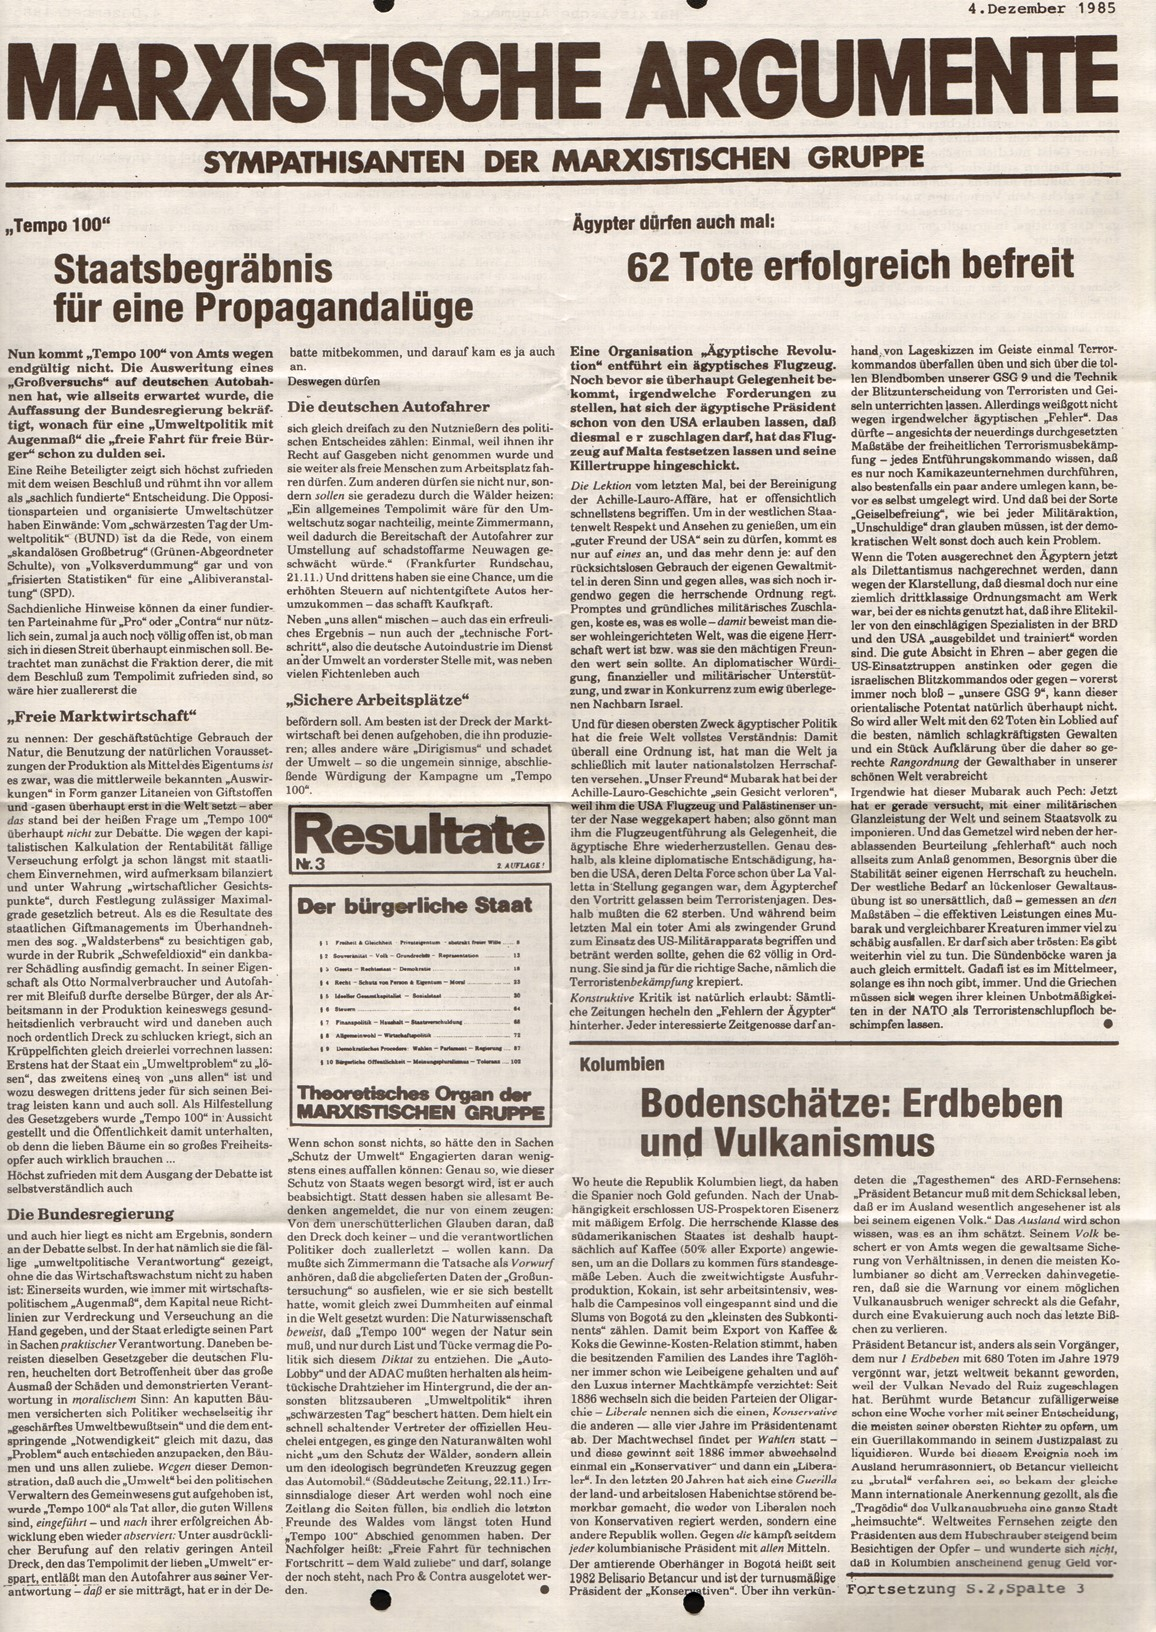 Berlin_MG_Symp_Argumente_19851204_01